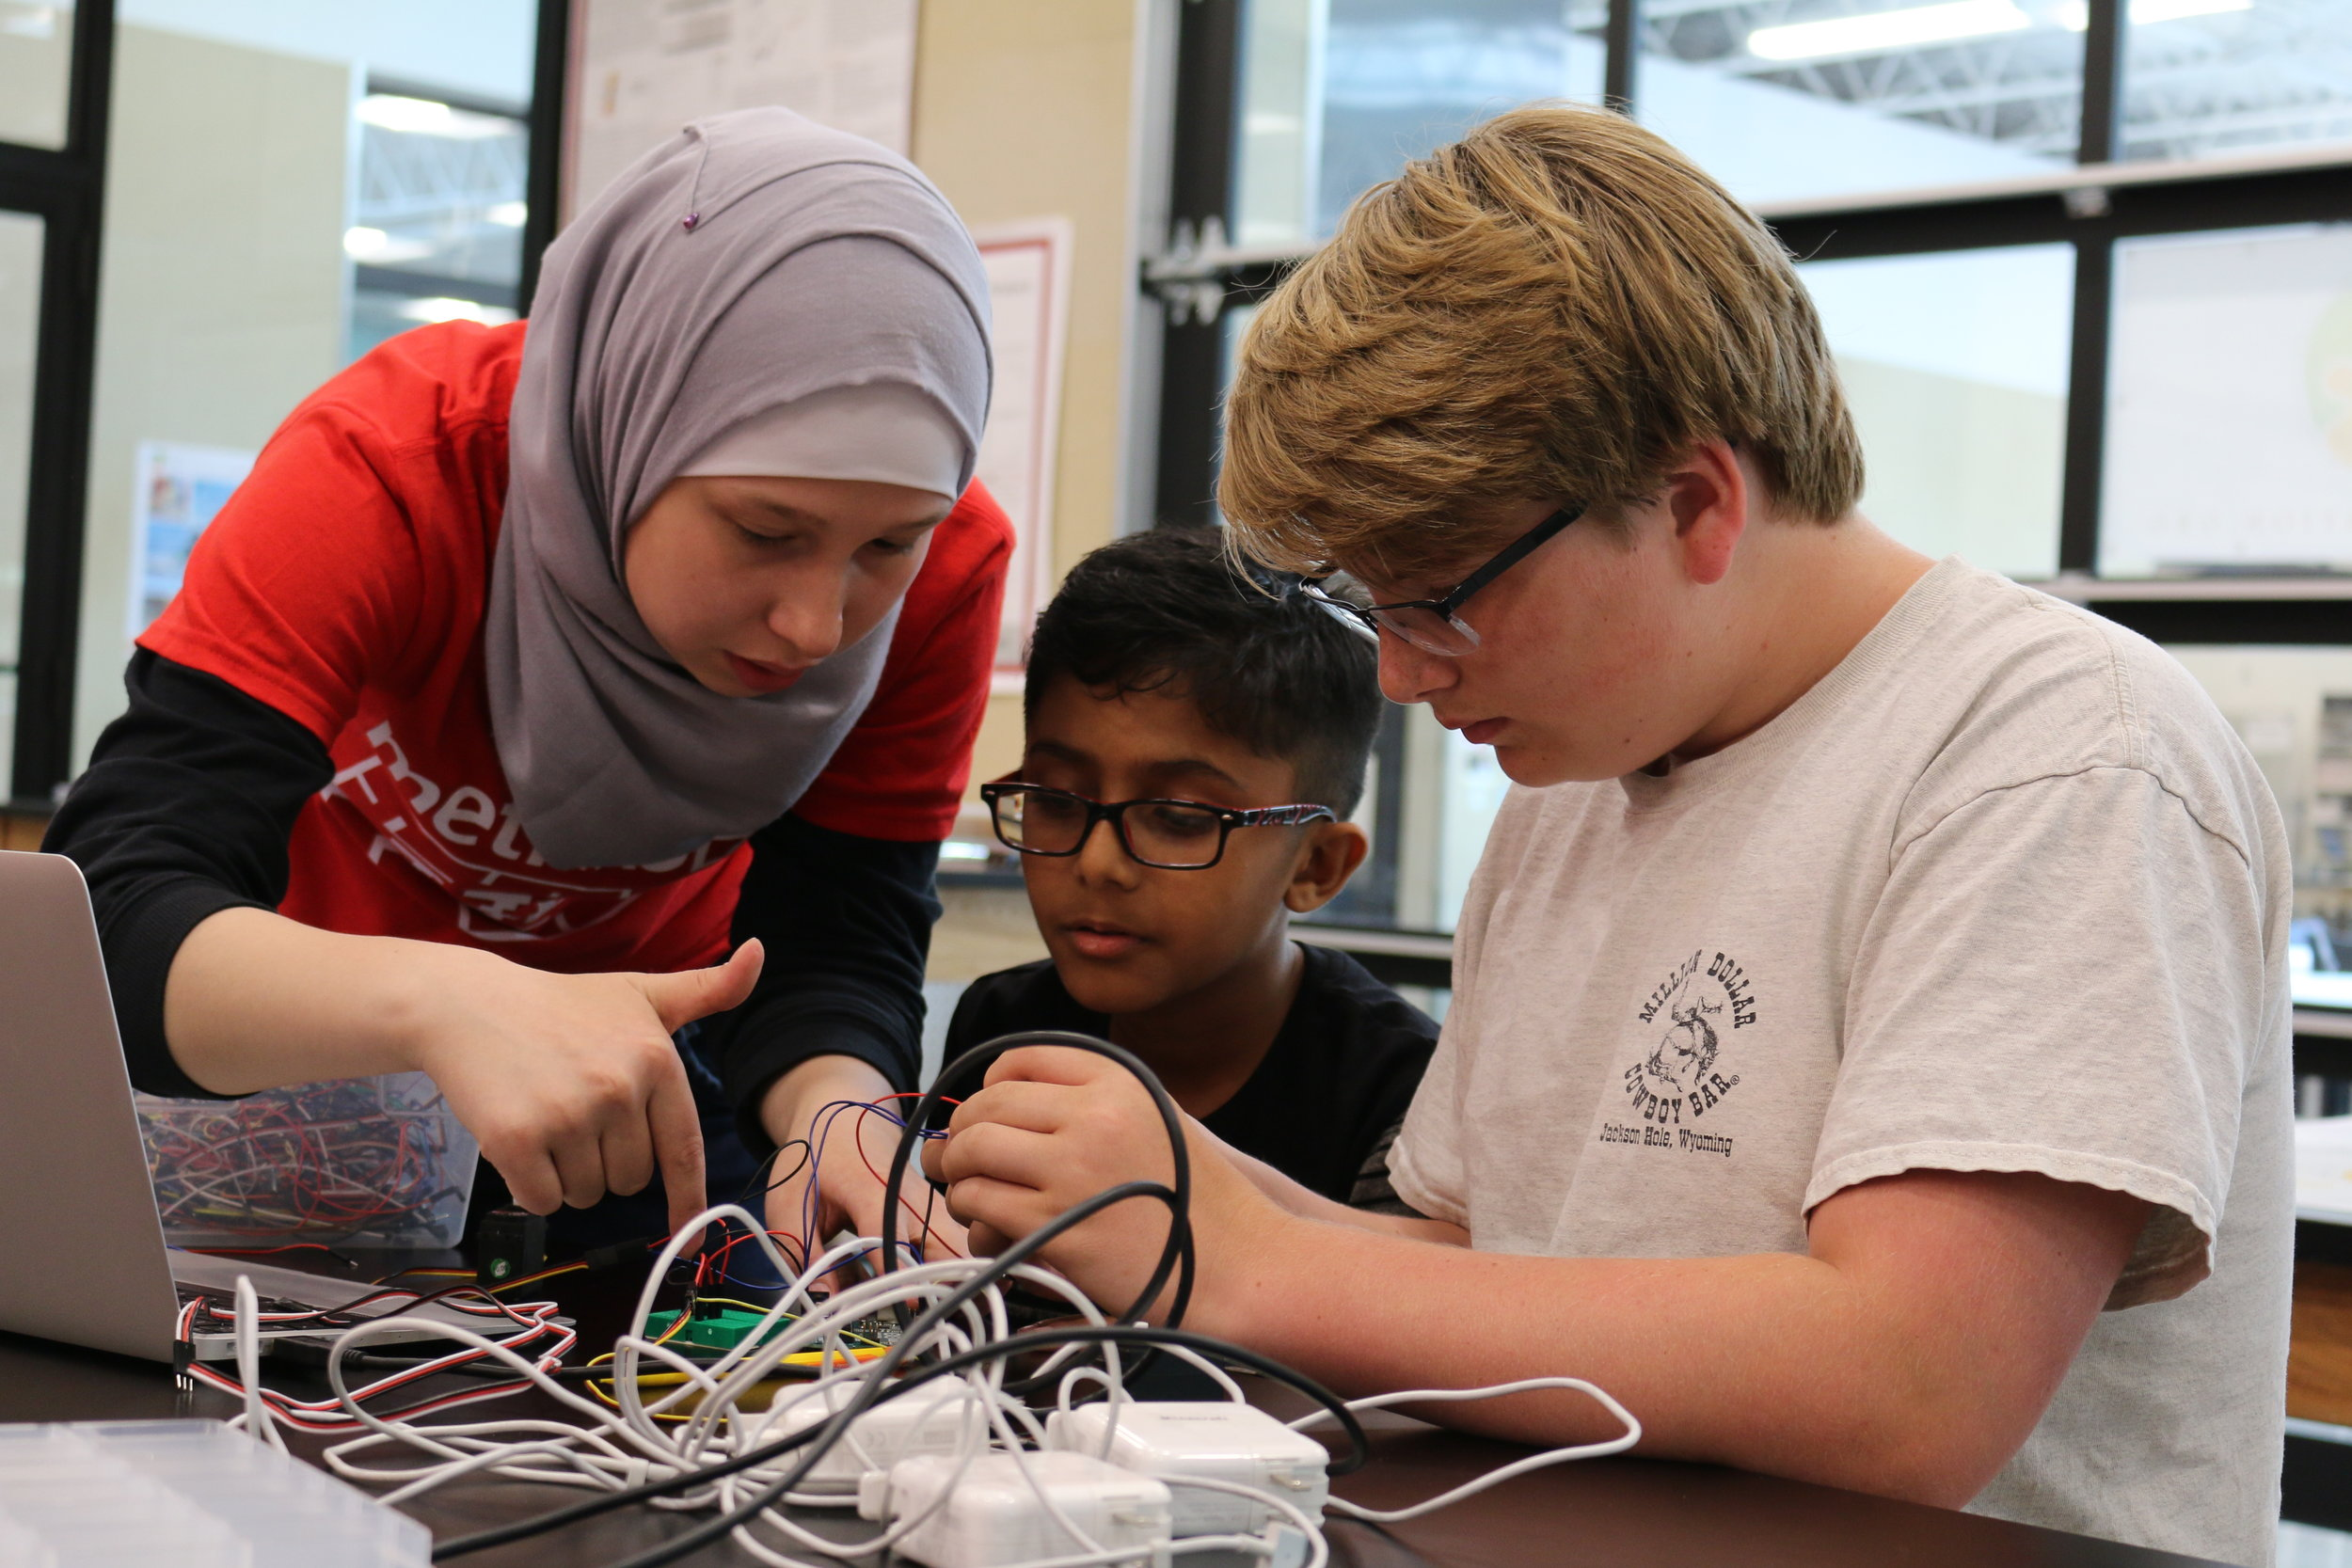 Intermediate Robotics Summer Camp(Summer 2018)-A senior on the team, Fatima(left) volunteers to help students learn how to breadboard